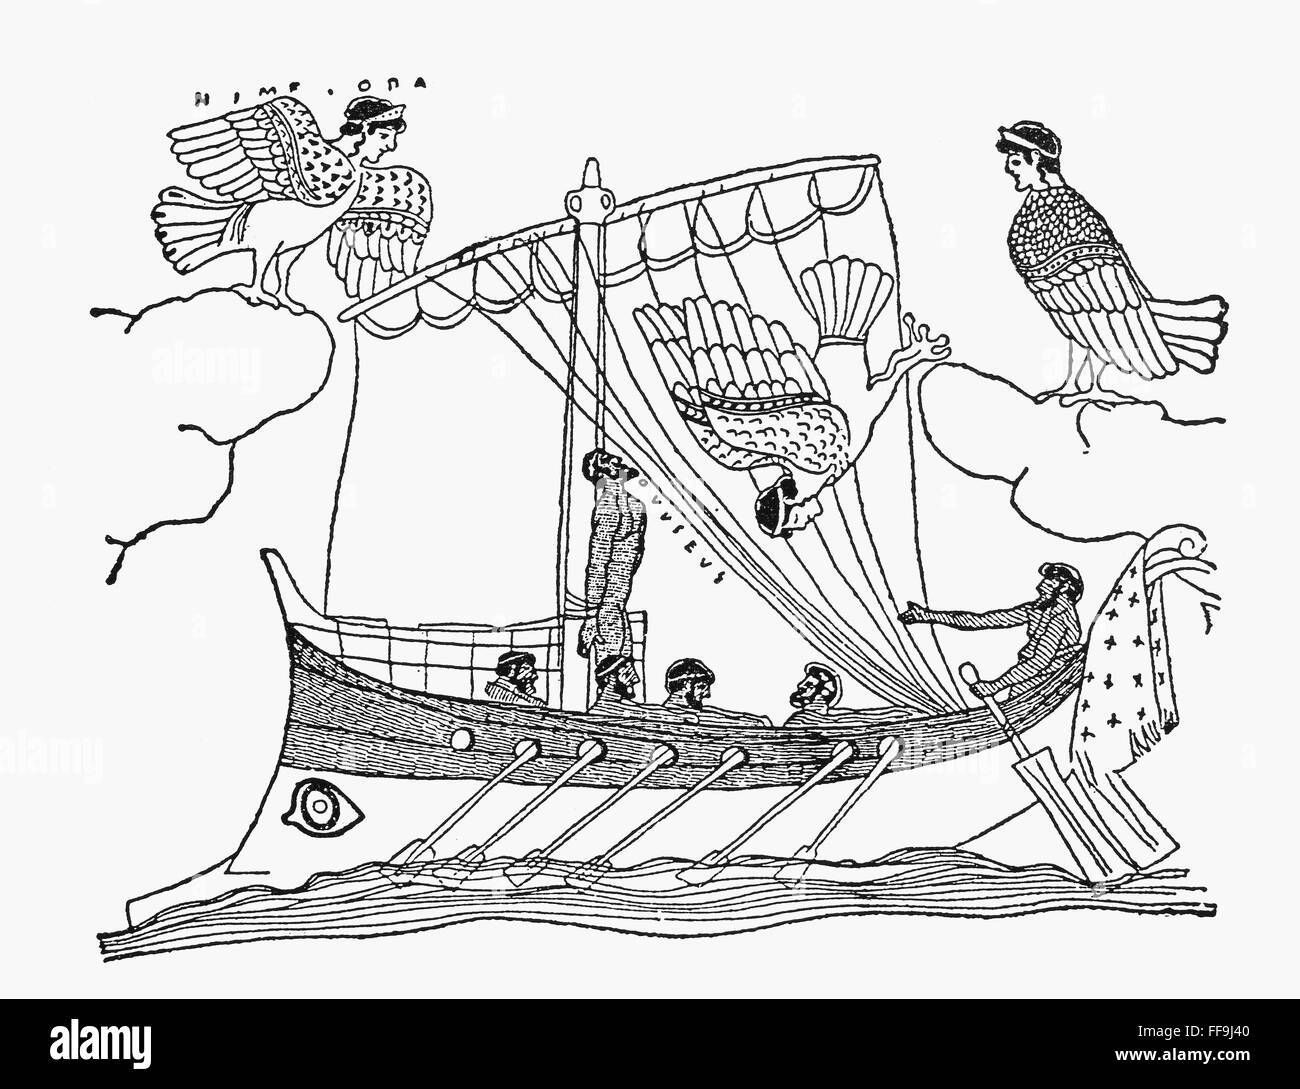 HOMER: THE ODYSSEY. /nUlysses and the Sirens from Book 12 of the ...